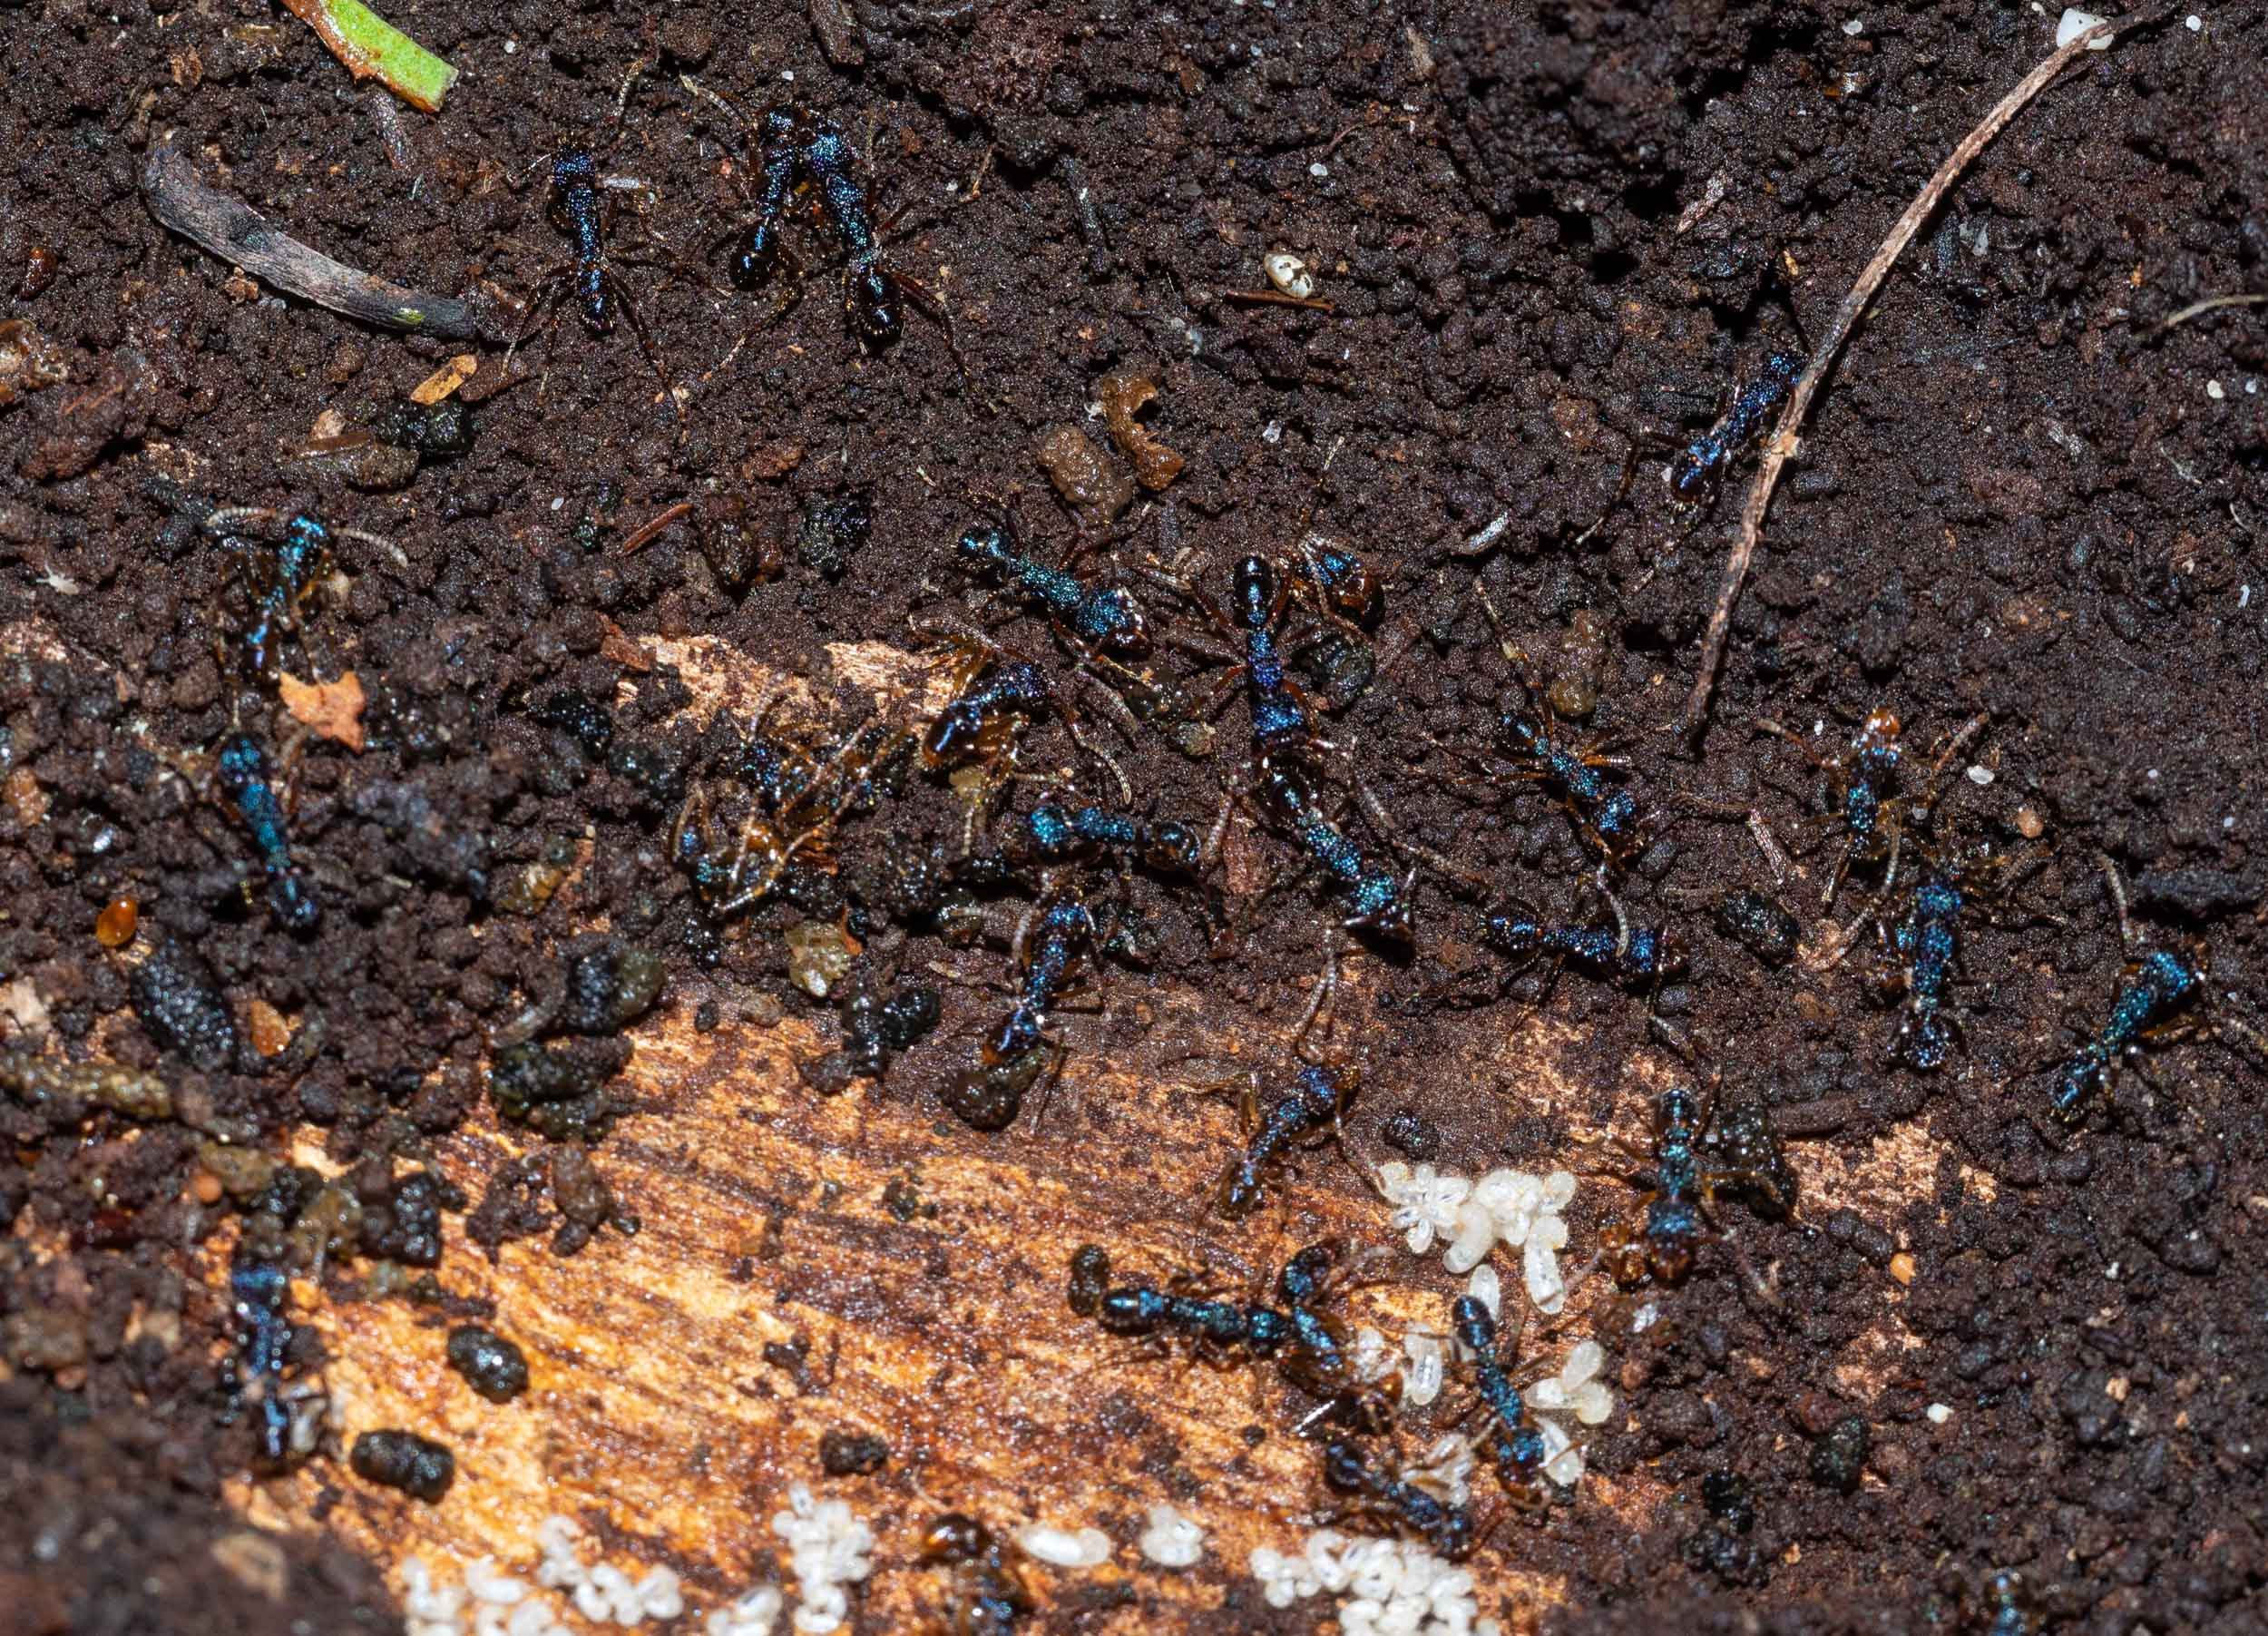 Turning over the bark of another log revealed this nest of ants with their larvae. This species is  Heteroponera imbellis . It builds a complex network of galleries inside the rotting wood.